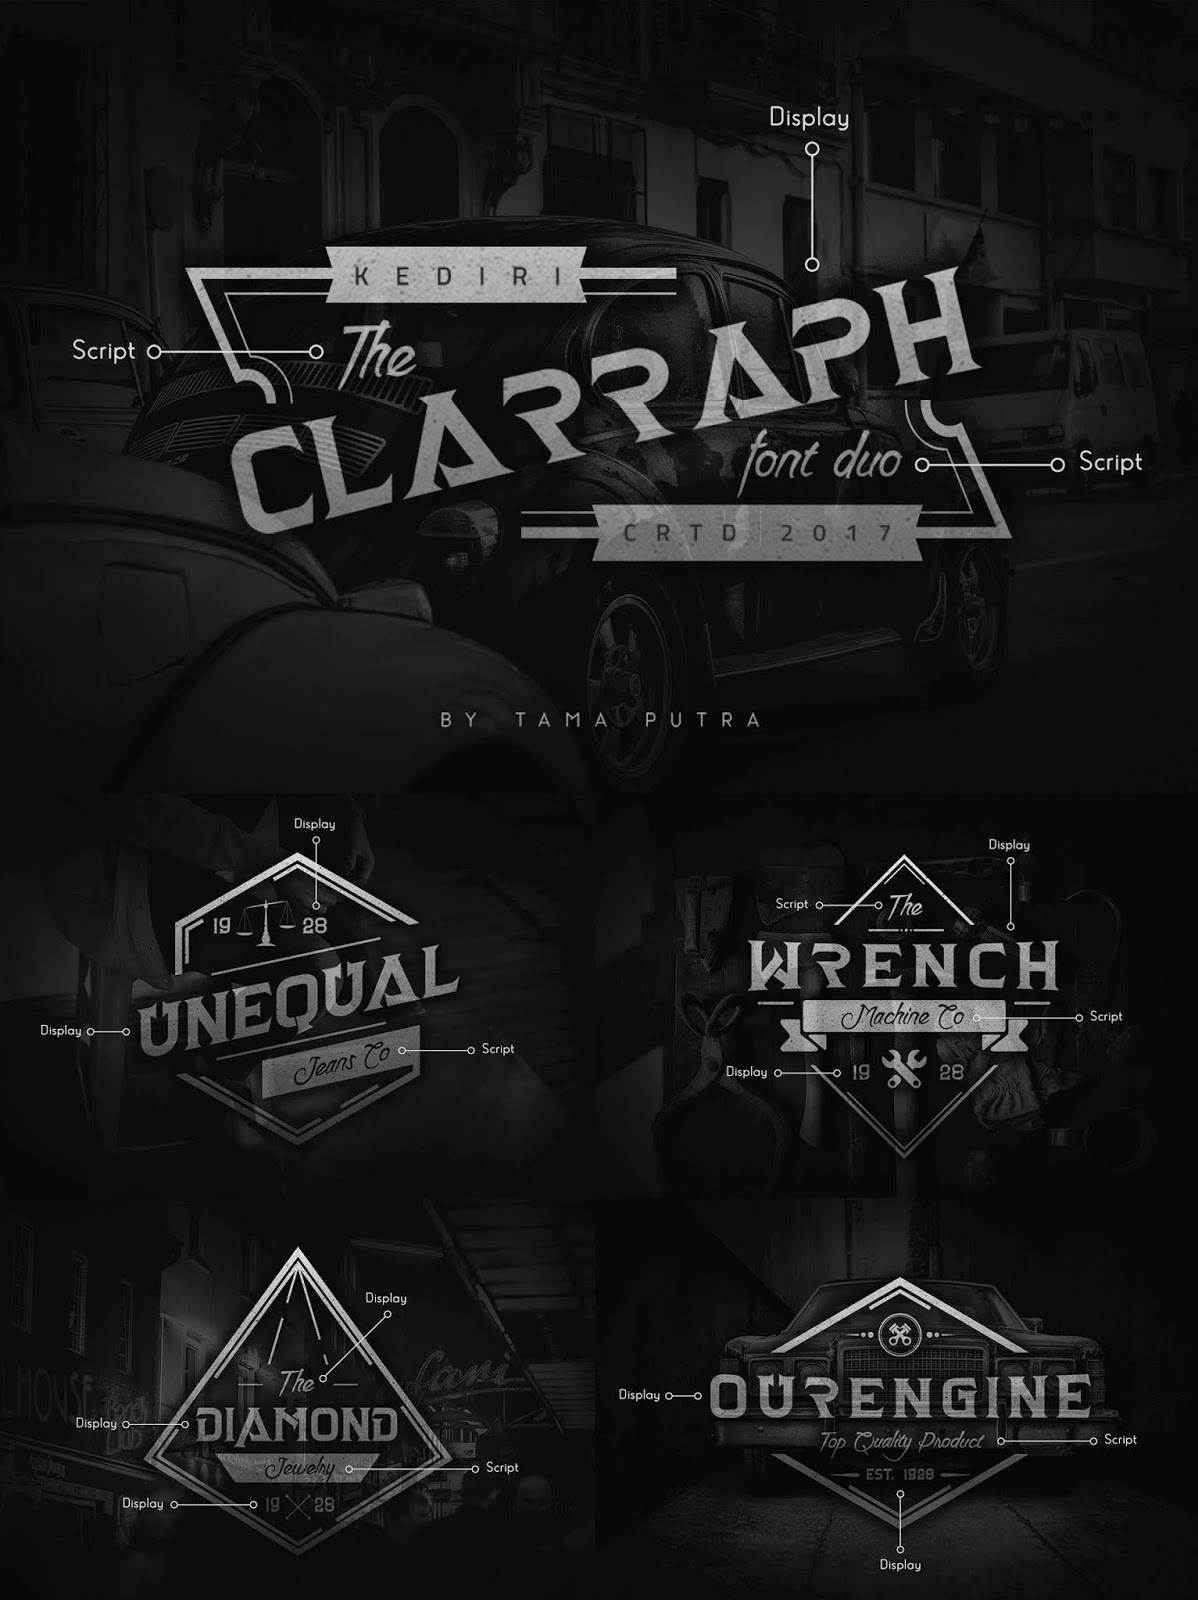 font, typeface, clarraph, display, handwritten, script, serif, decorative, badge, insignia